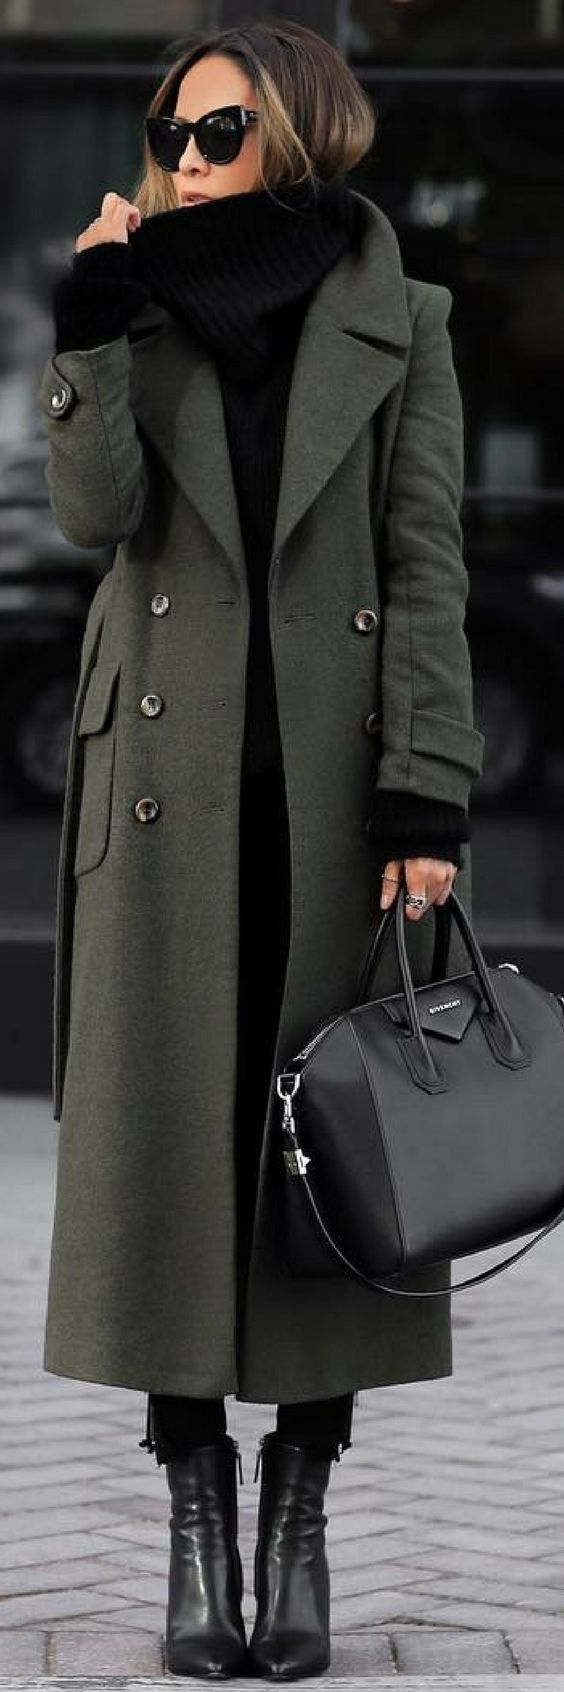 How To Style The Best 5 Attractive Autumn Outfits https://ecstasymodels.blog/2017/11/17/style-best-5-attractive-autumn-outifts/